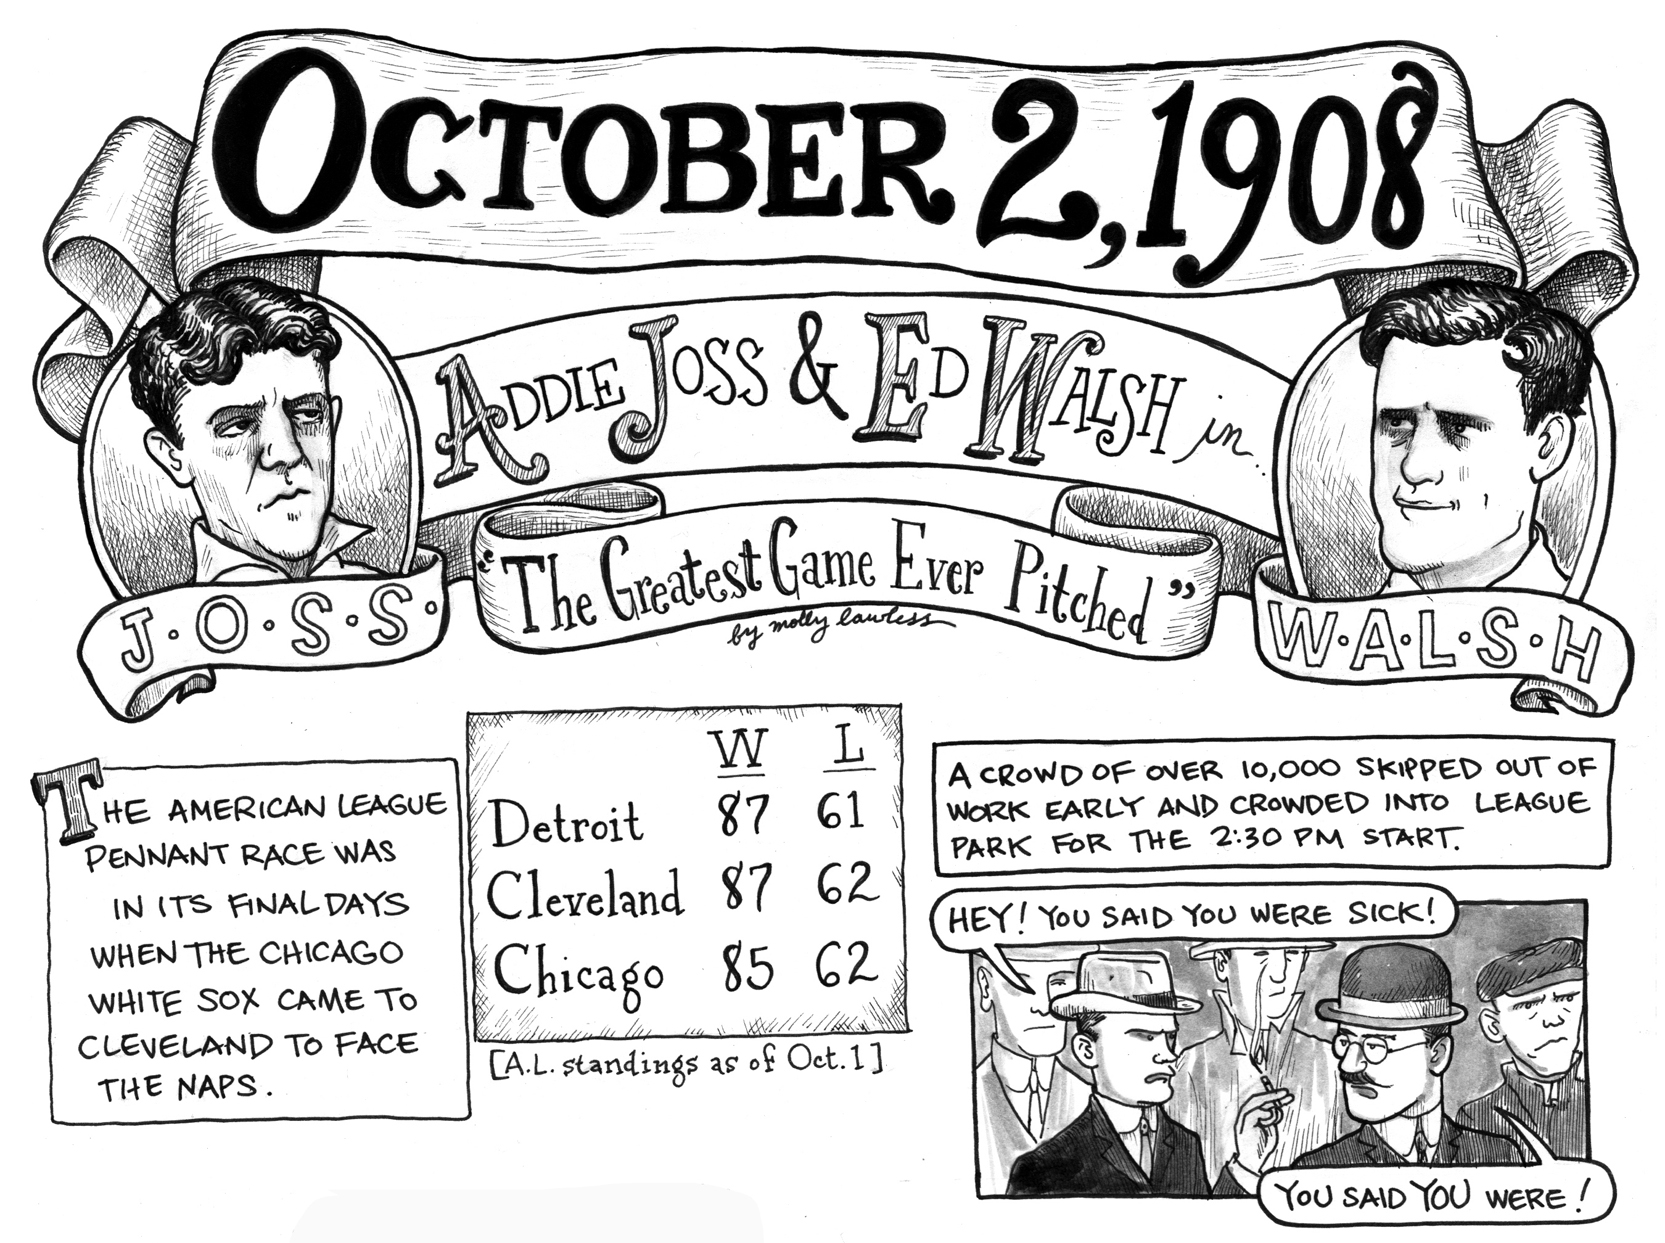 October 2, 1908: Addie Joss and Ed Walsh.